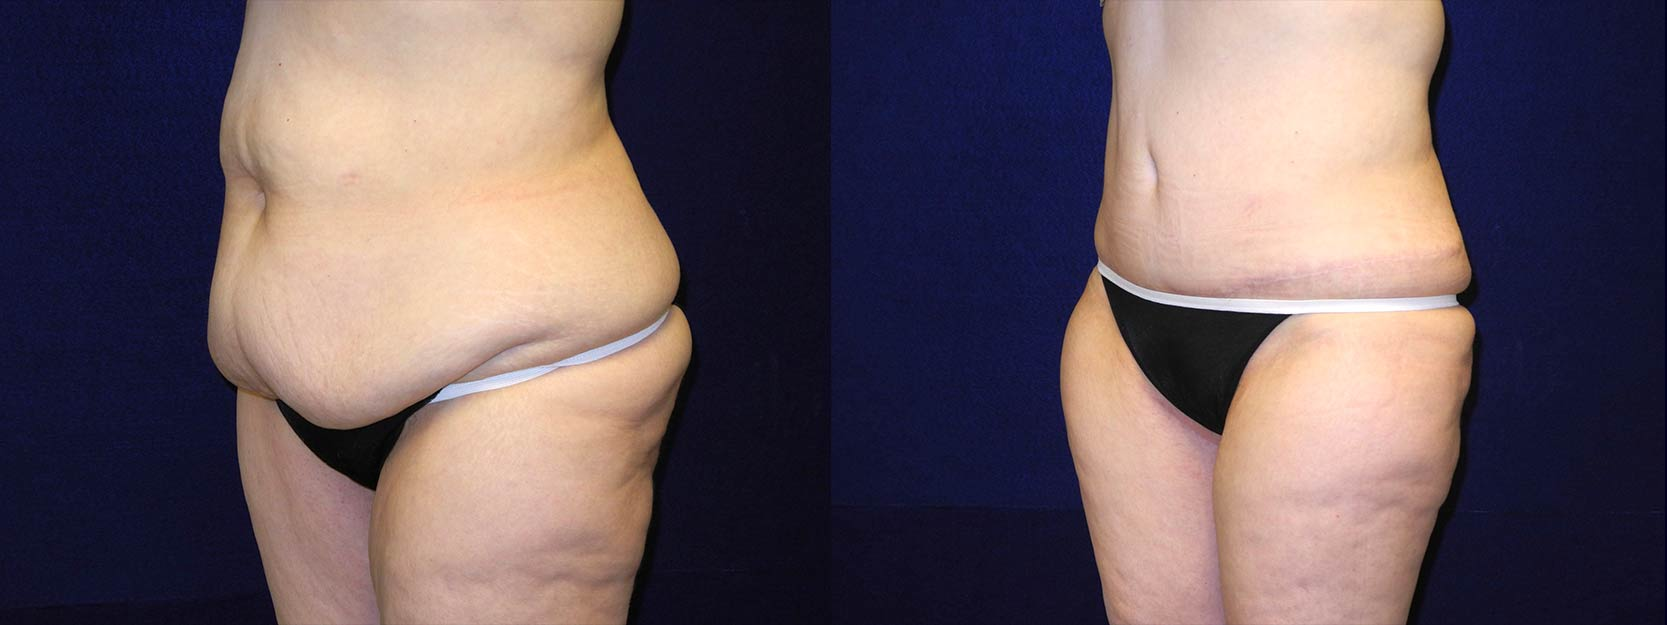 Left 3/4 View - Circumferential Tummy Tuck